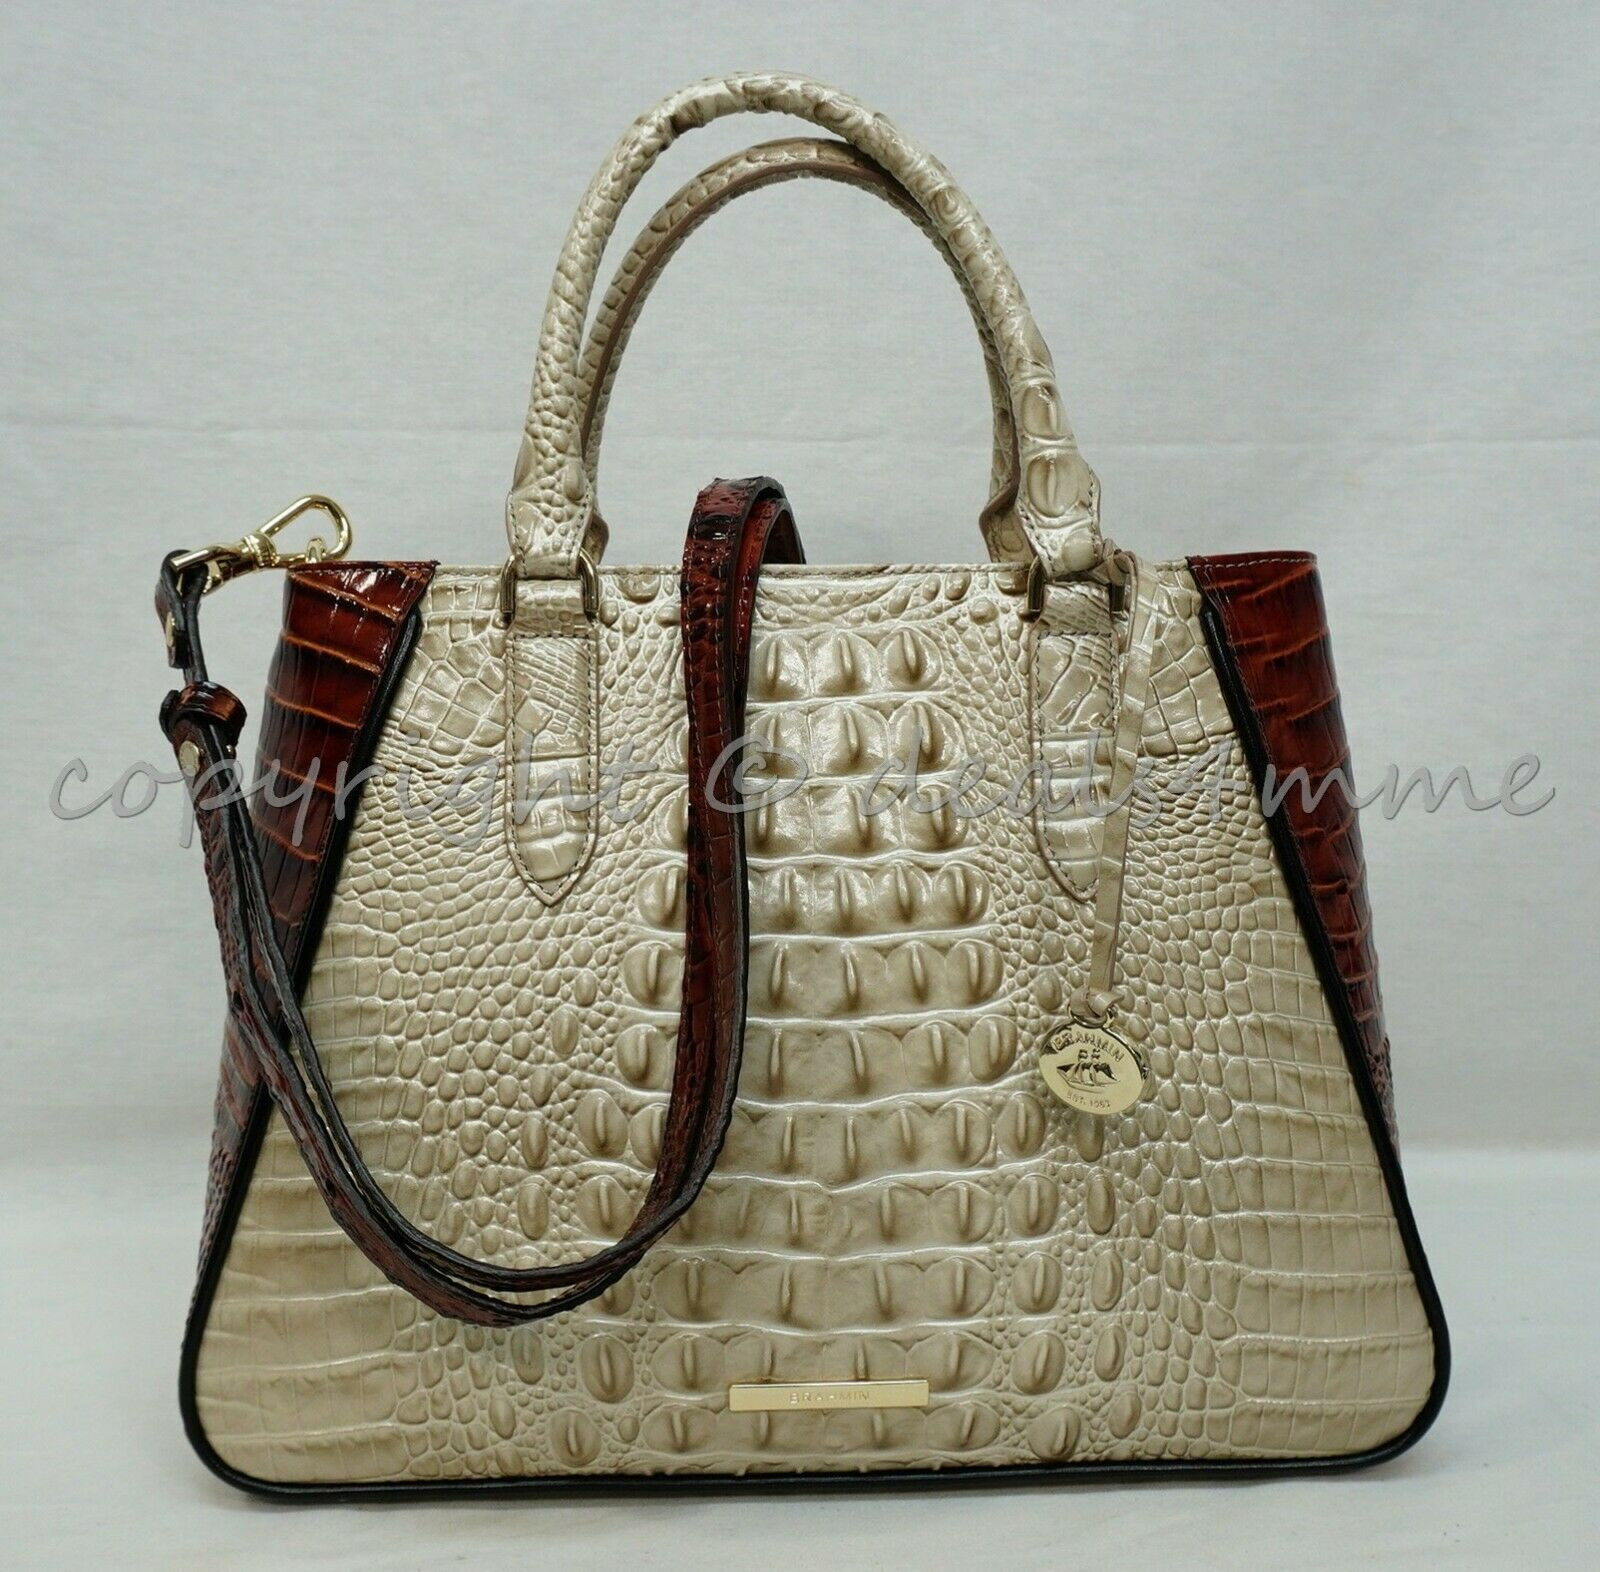 Primary image for NWT Brahmin Small Irene Leather Satchel/Shoulder Bag in Linen Osmia